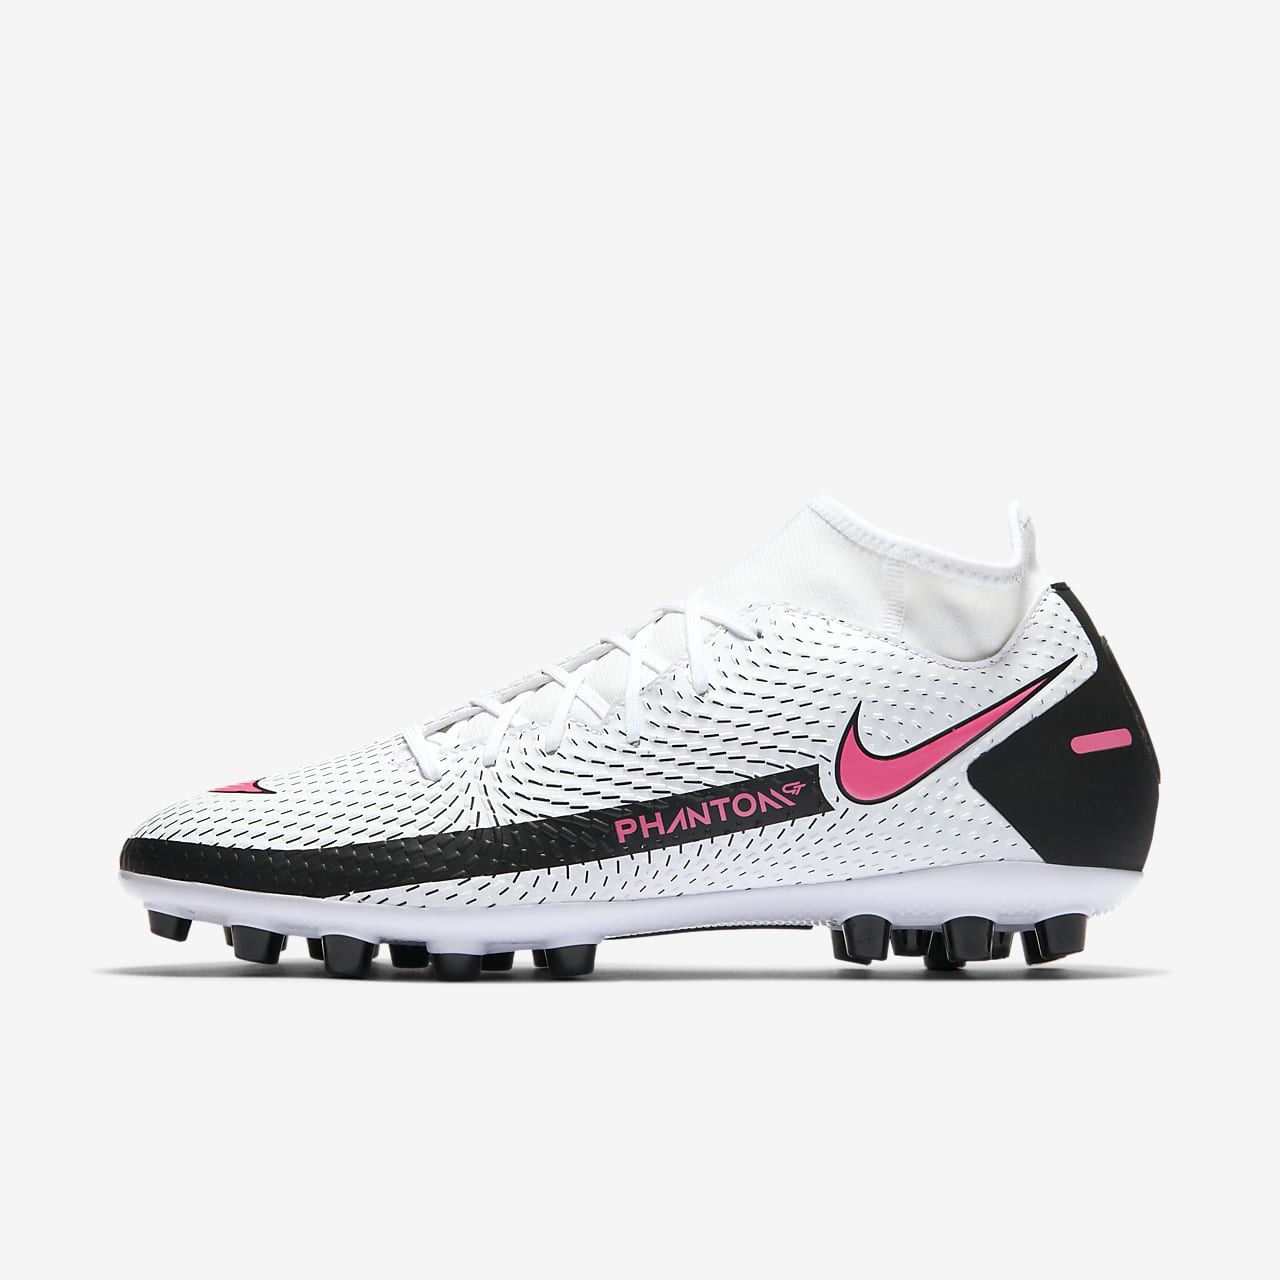 Chaussure de football à crampons pour terrain synthétique Nike Phantom GT Academy Dynamic Fit AG